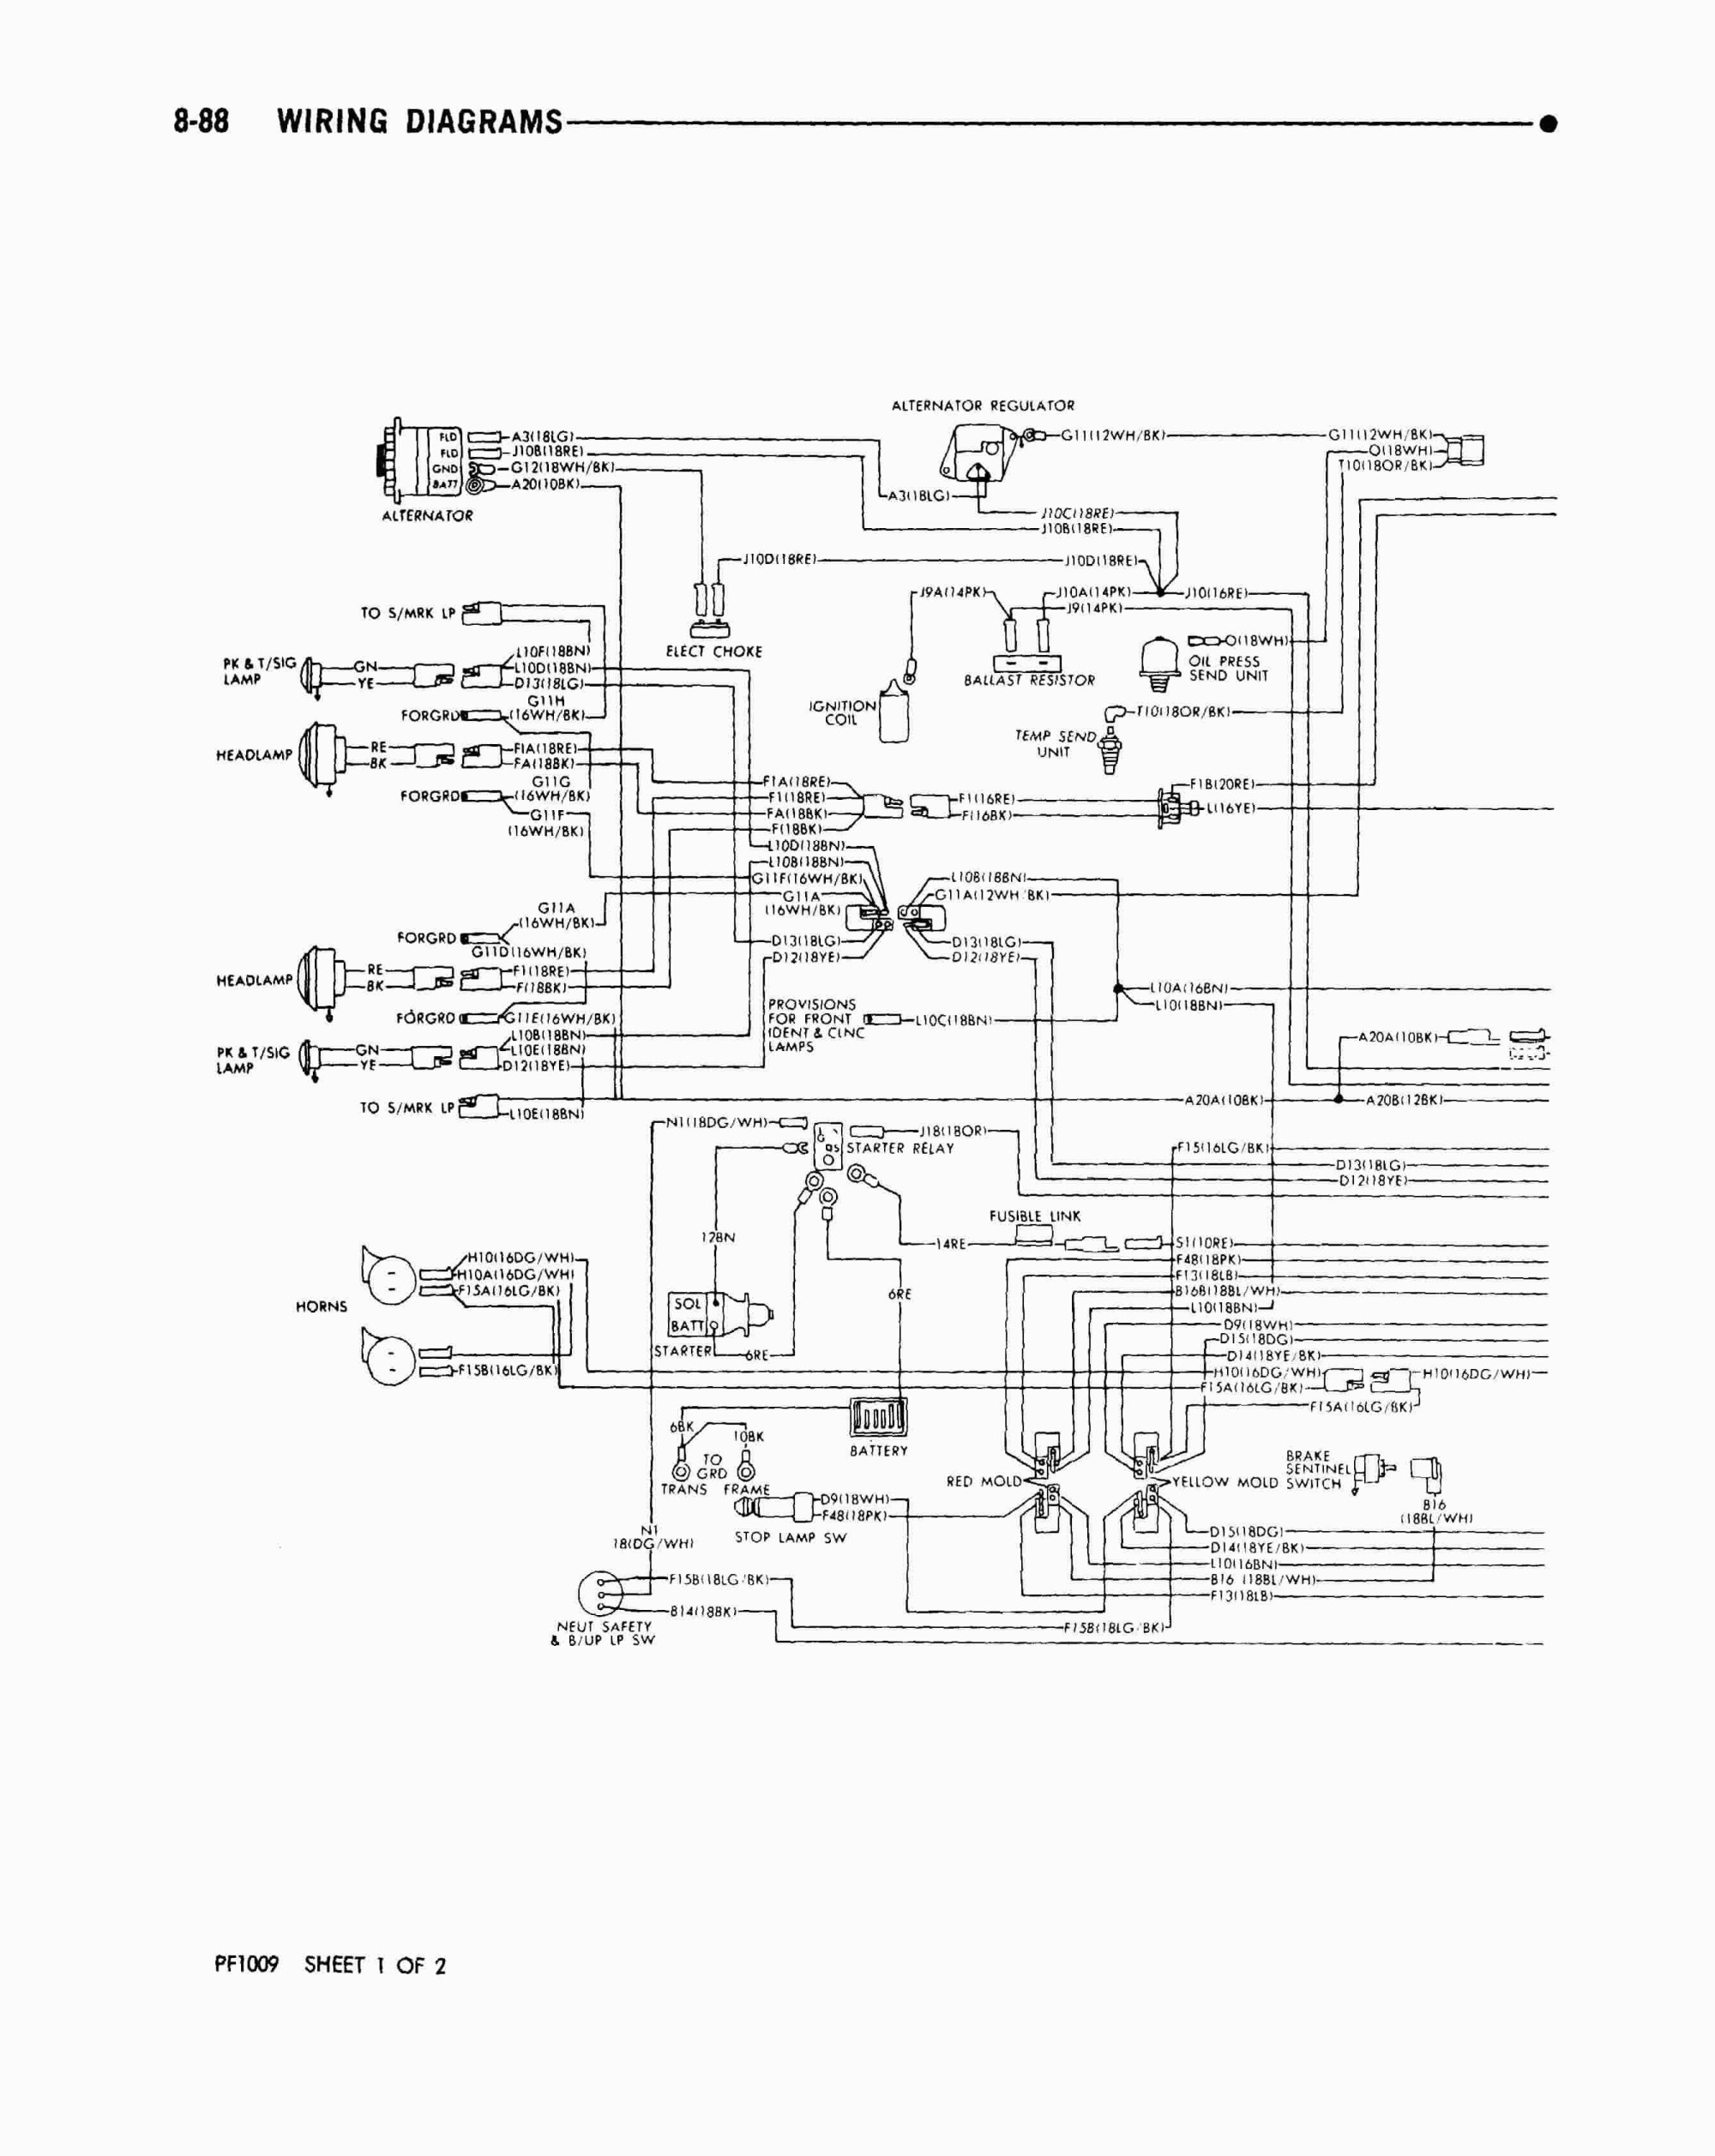 hight resolution of ford f53 motorhome chassis wiring diagram wiring diagram image rh mainetreasurechest com 2013 ford f53 chassis